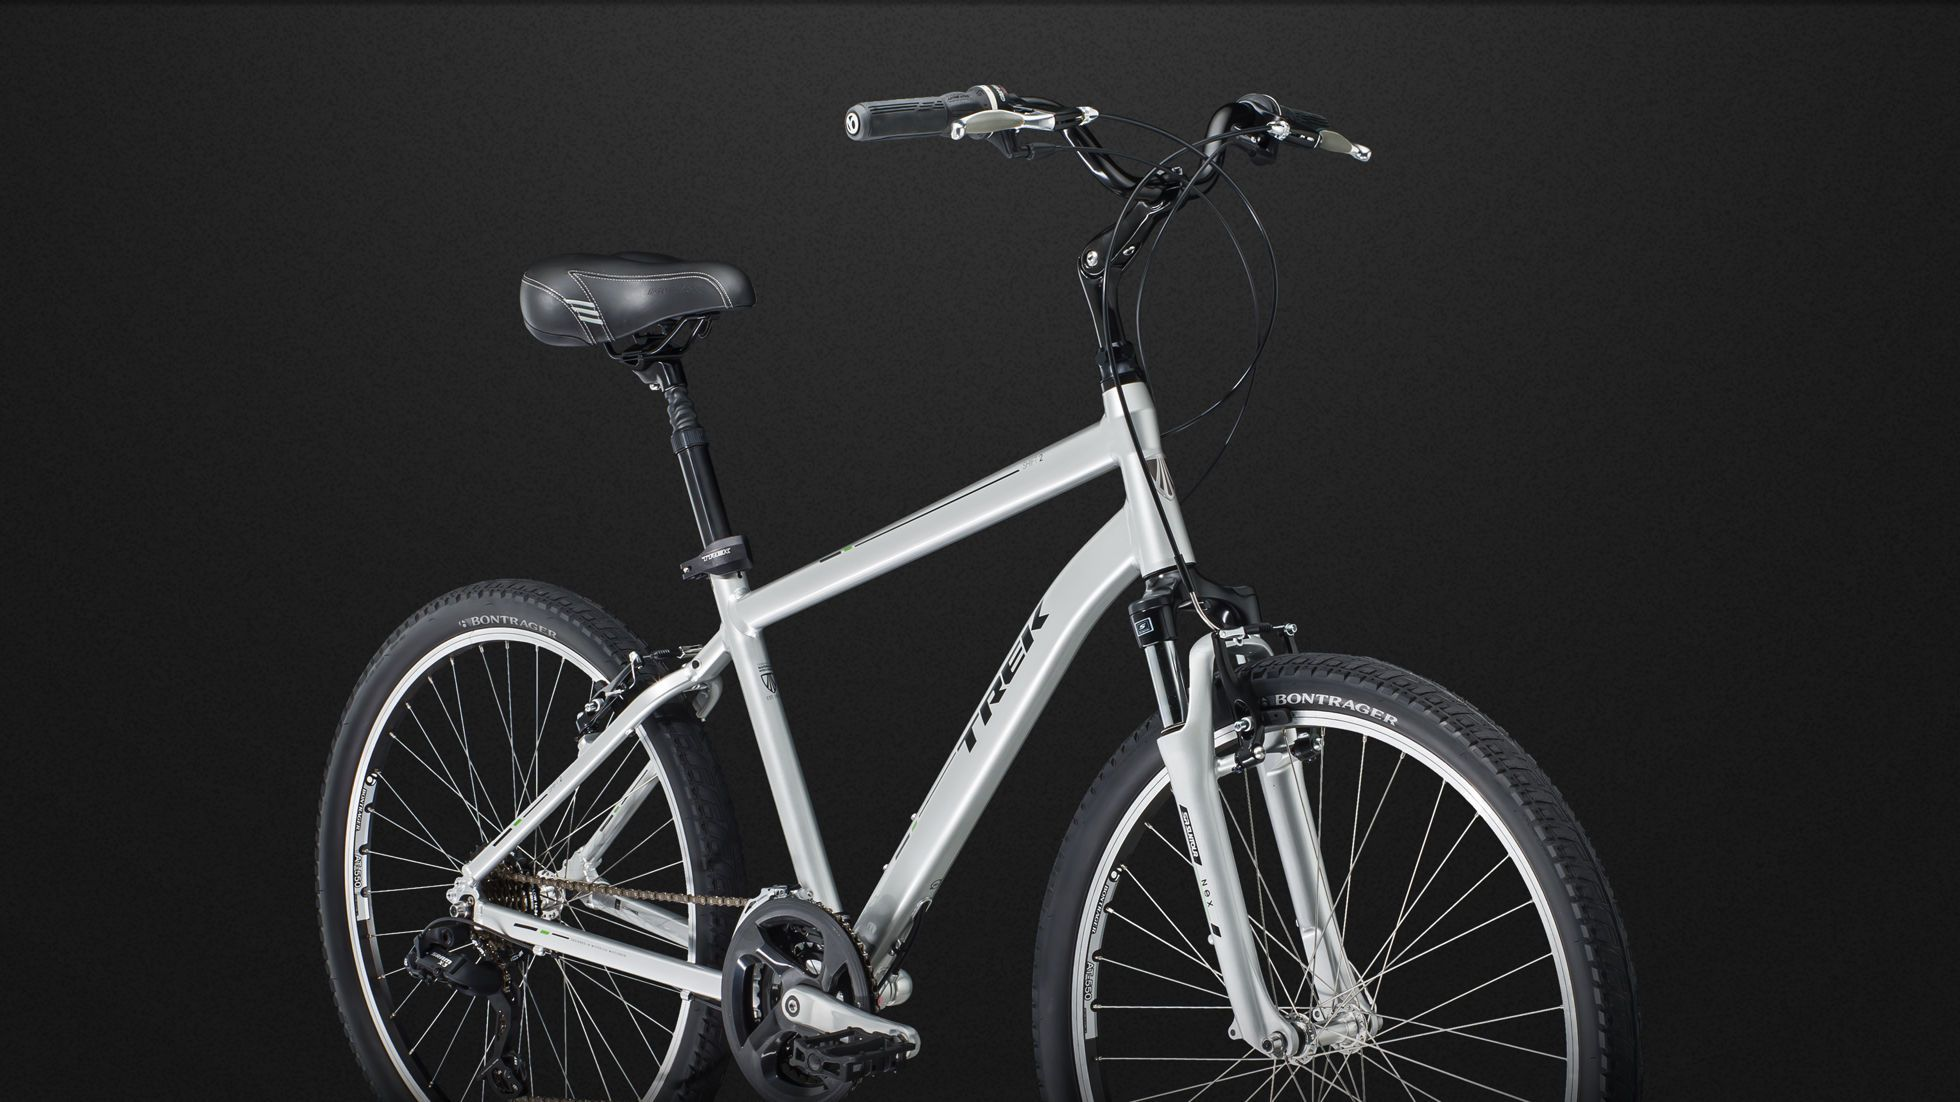 Shift Comfort Trek Bicycle Sports Pinterest Bicycling And